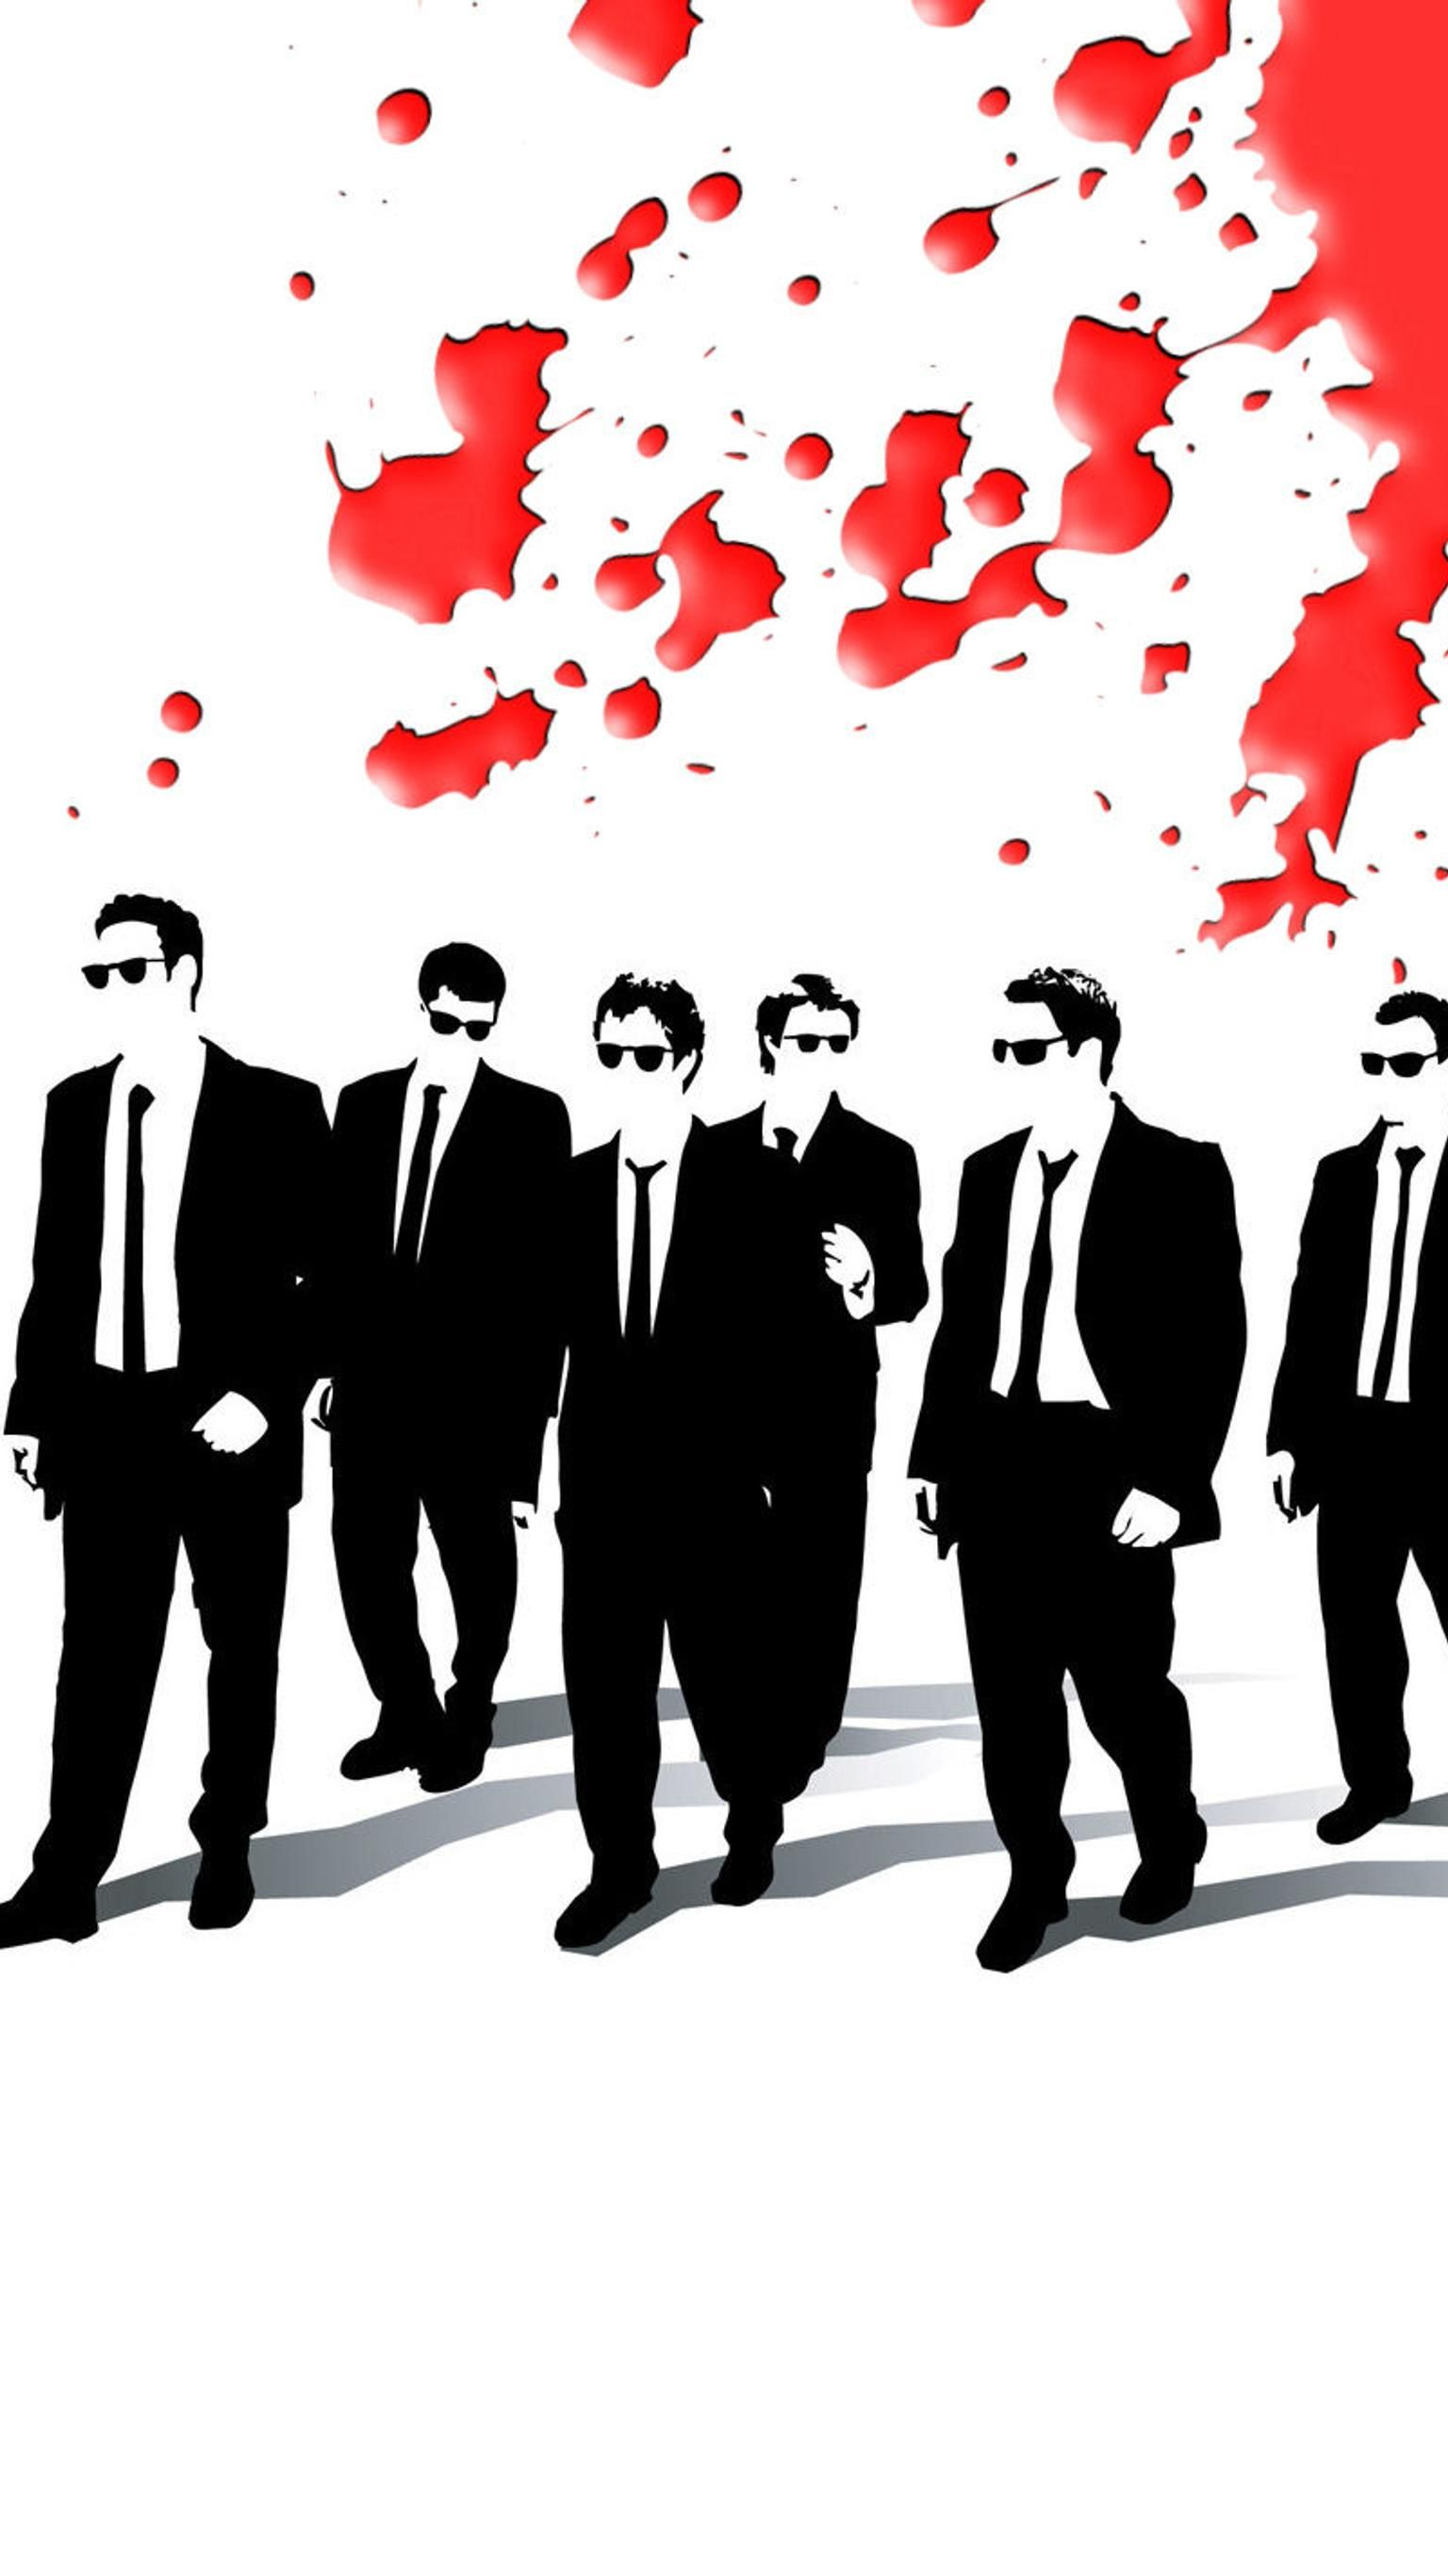 Reservoir Dogs 1992 Phone Wallpaper Moviemania Dog Wallpaper Iphone Reservoir Dogs Poster Reservoir Dogs